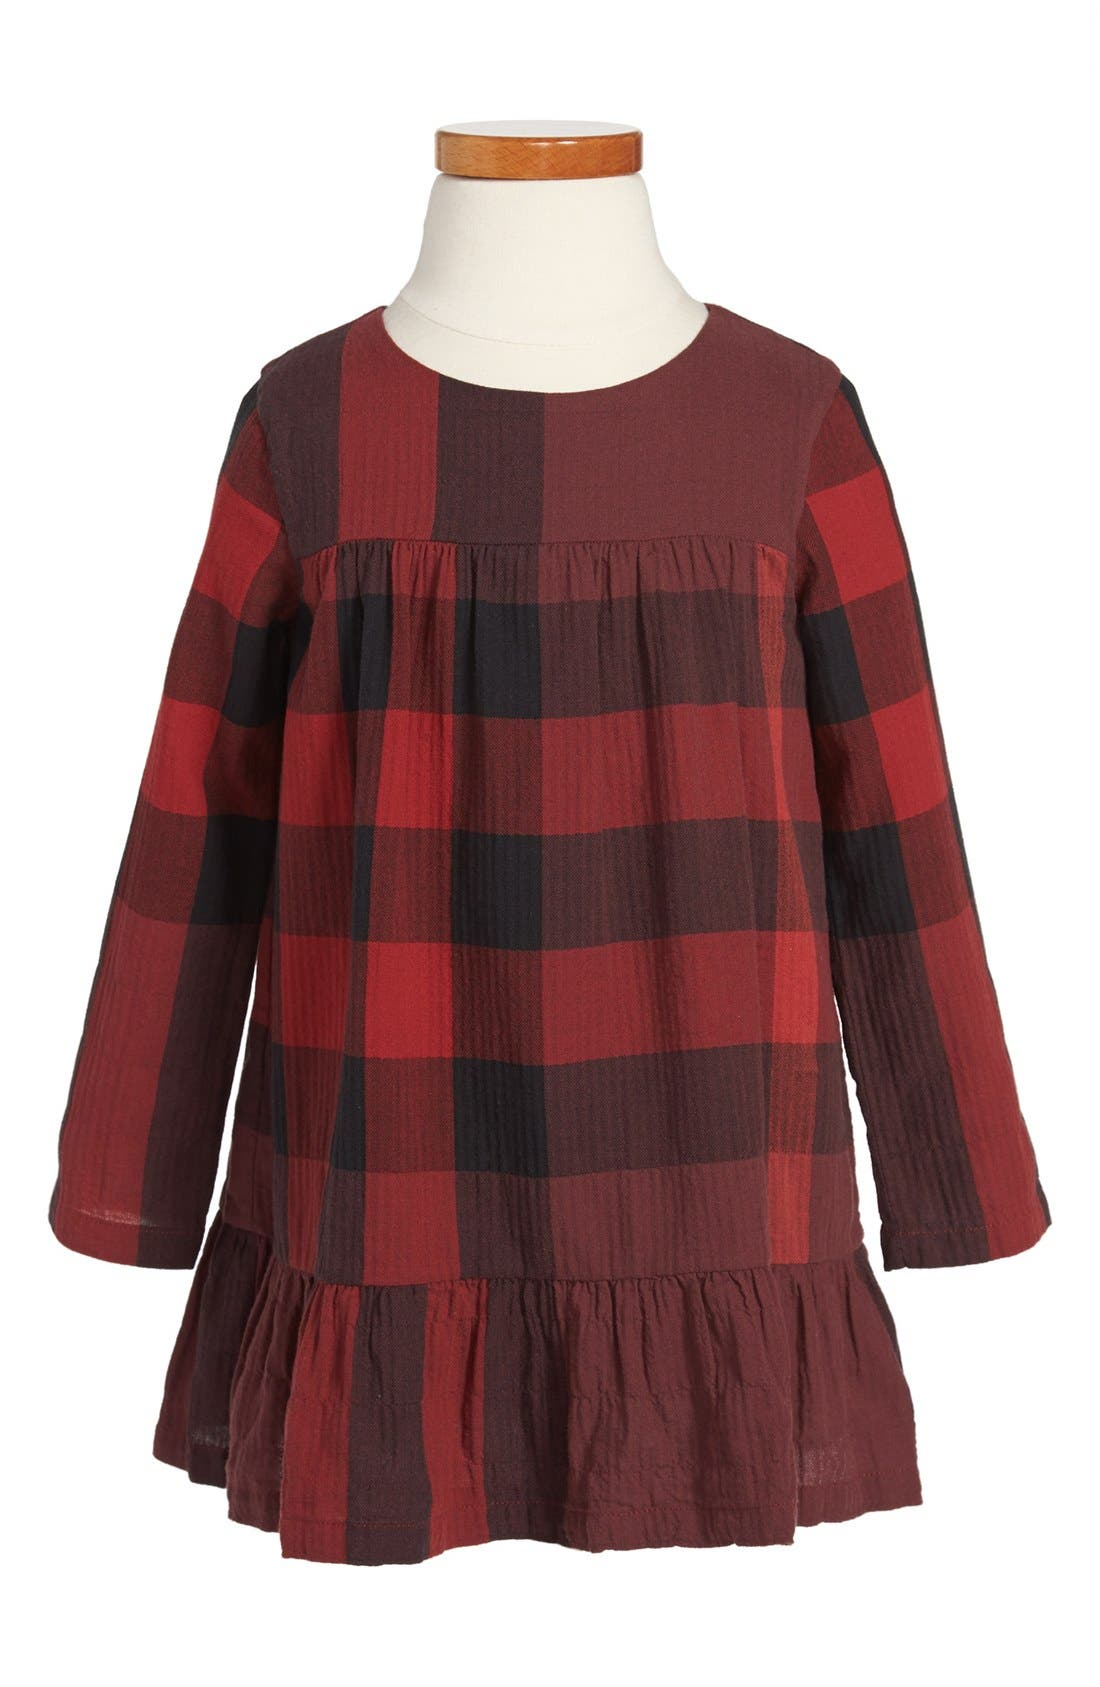 Main Image - Burberry 'Idina' Woven Dress (Baby Girls)